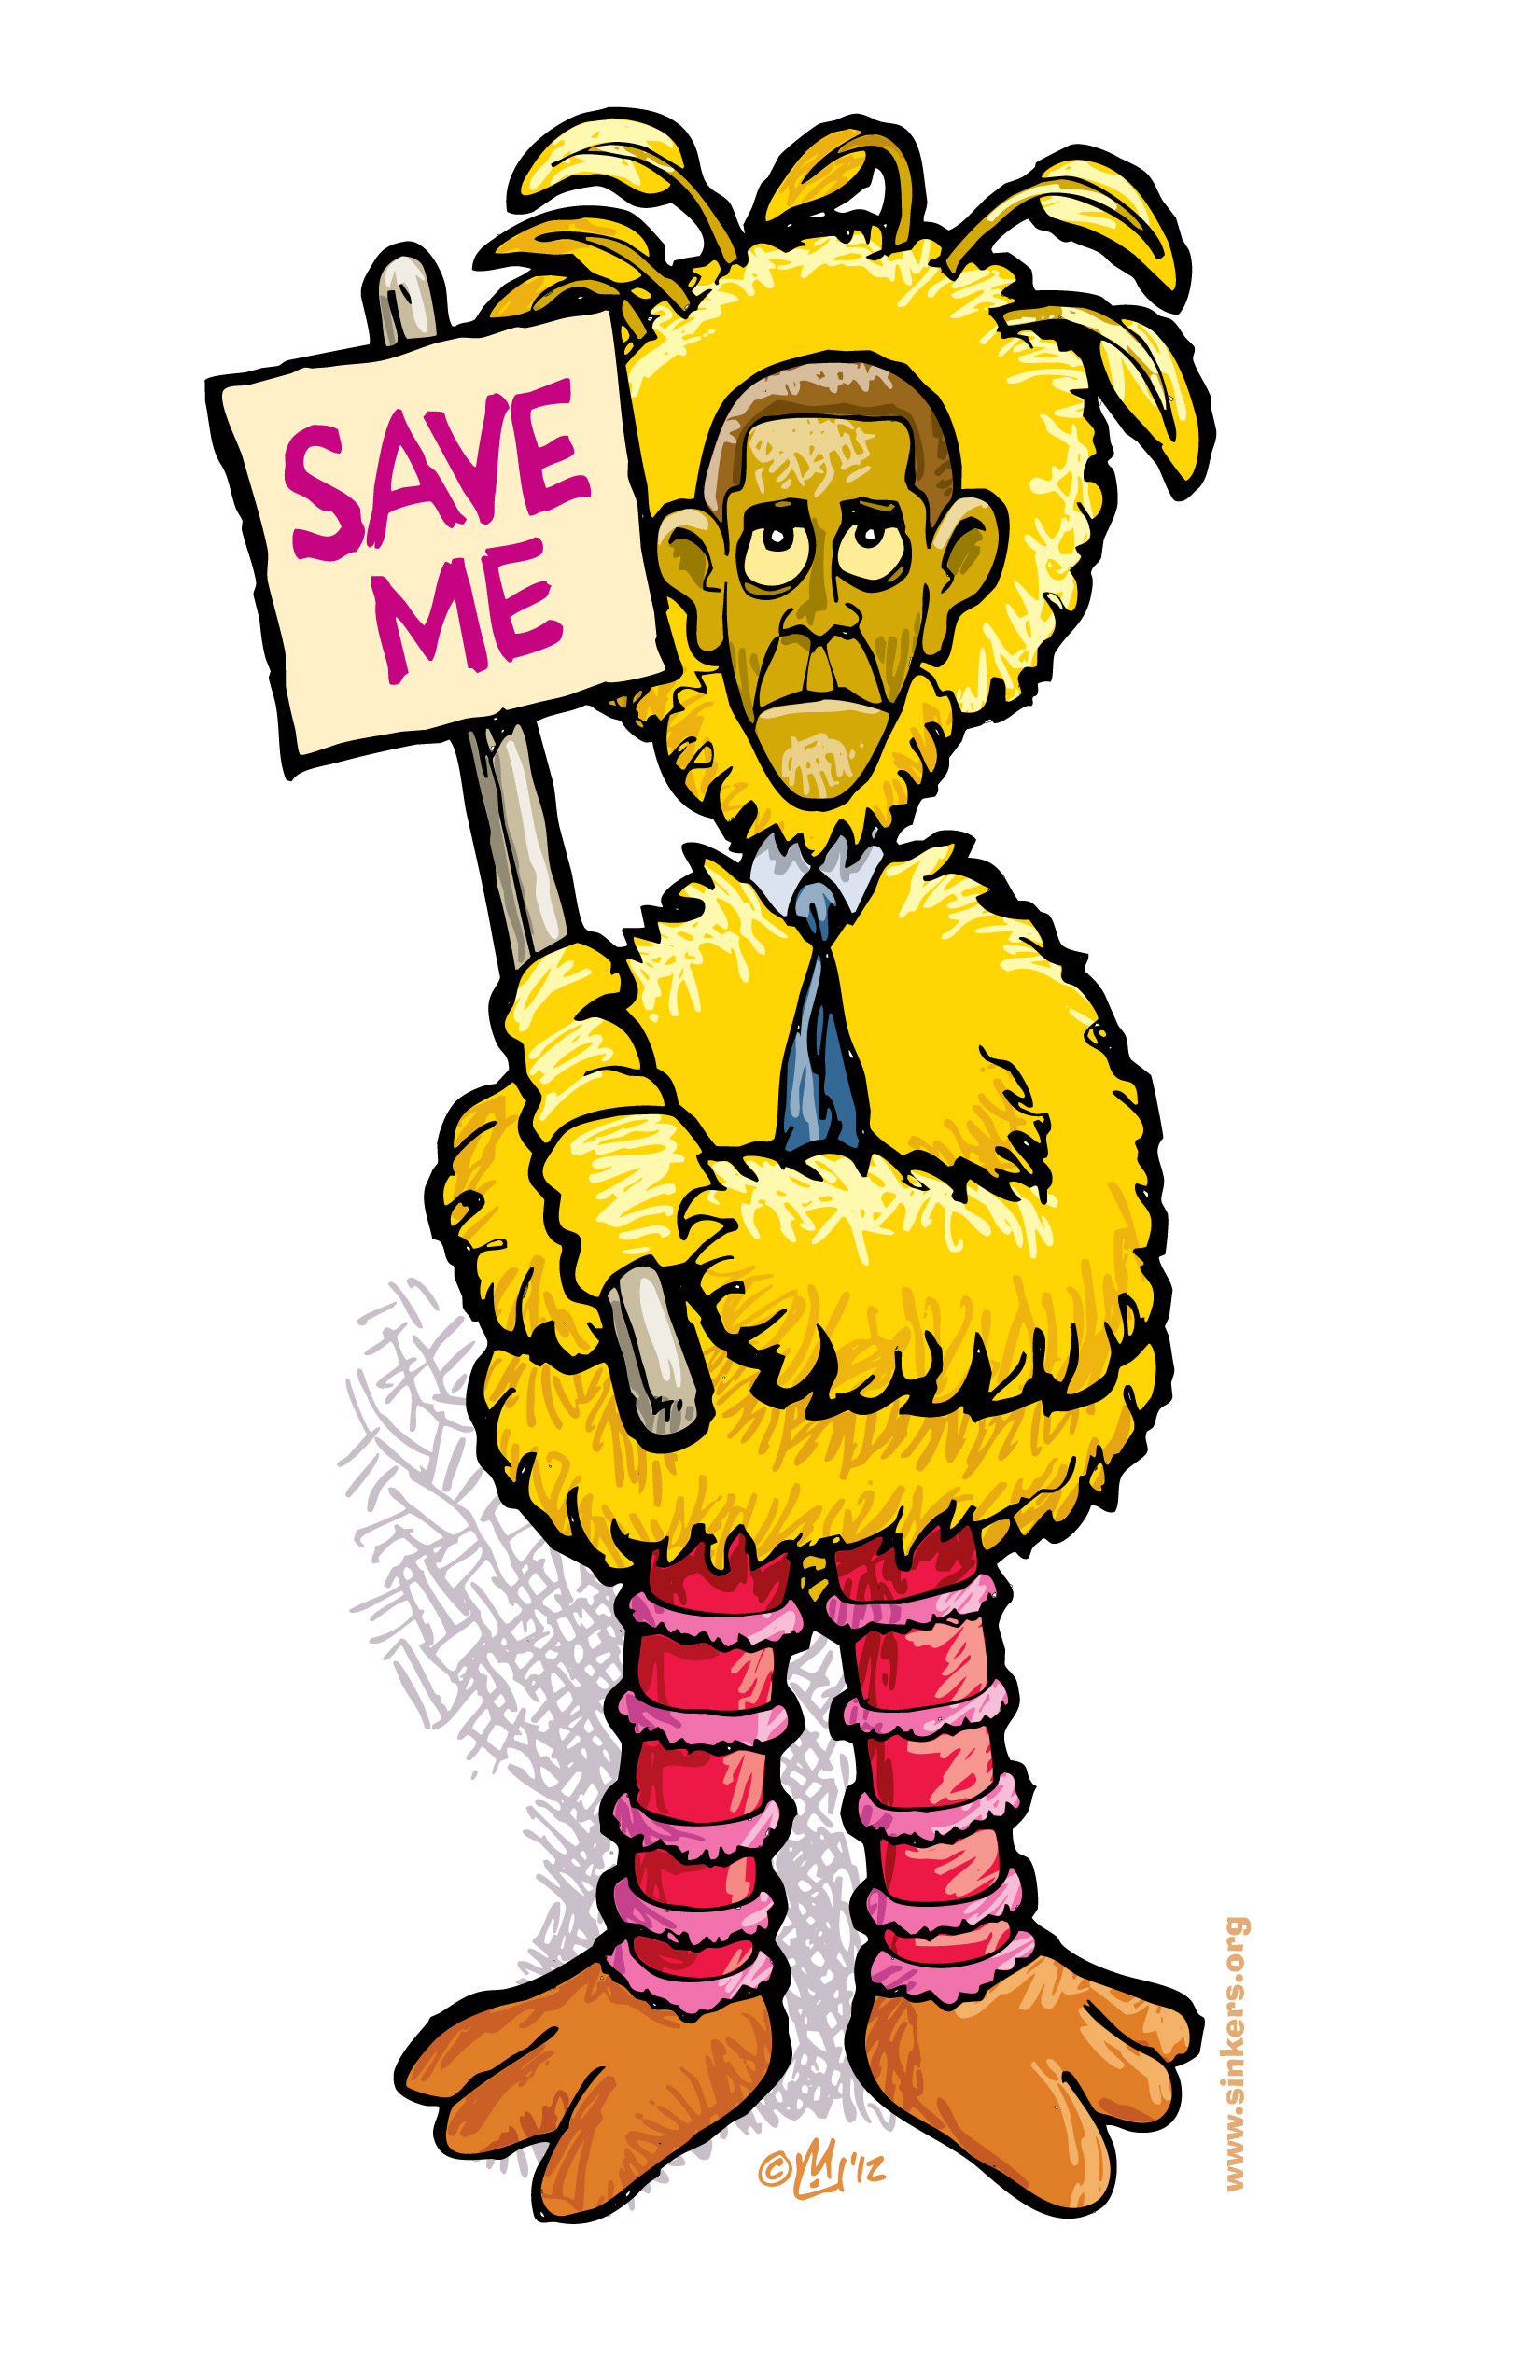 Big Bird Obama Save Me Fired Big Bird Mitt Romney Hates Big Bird